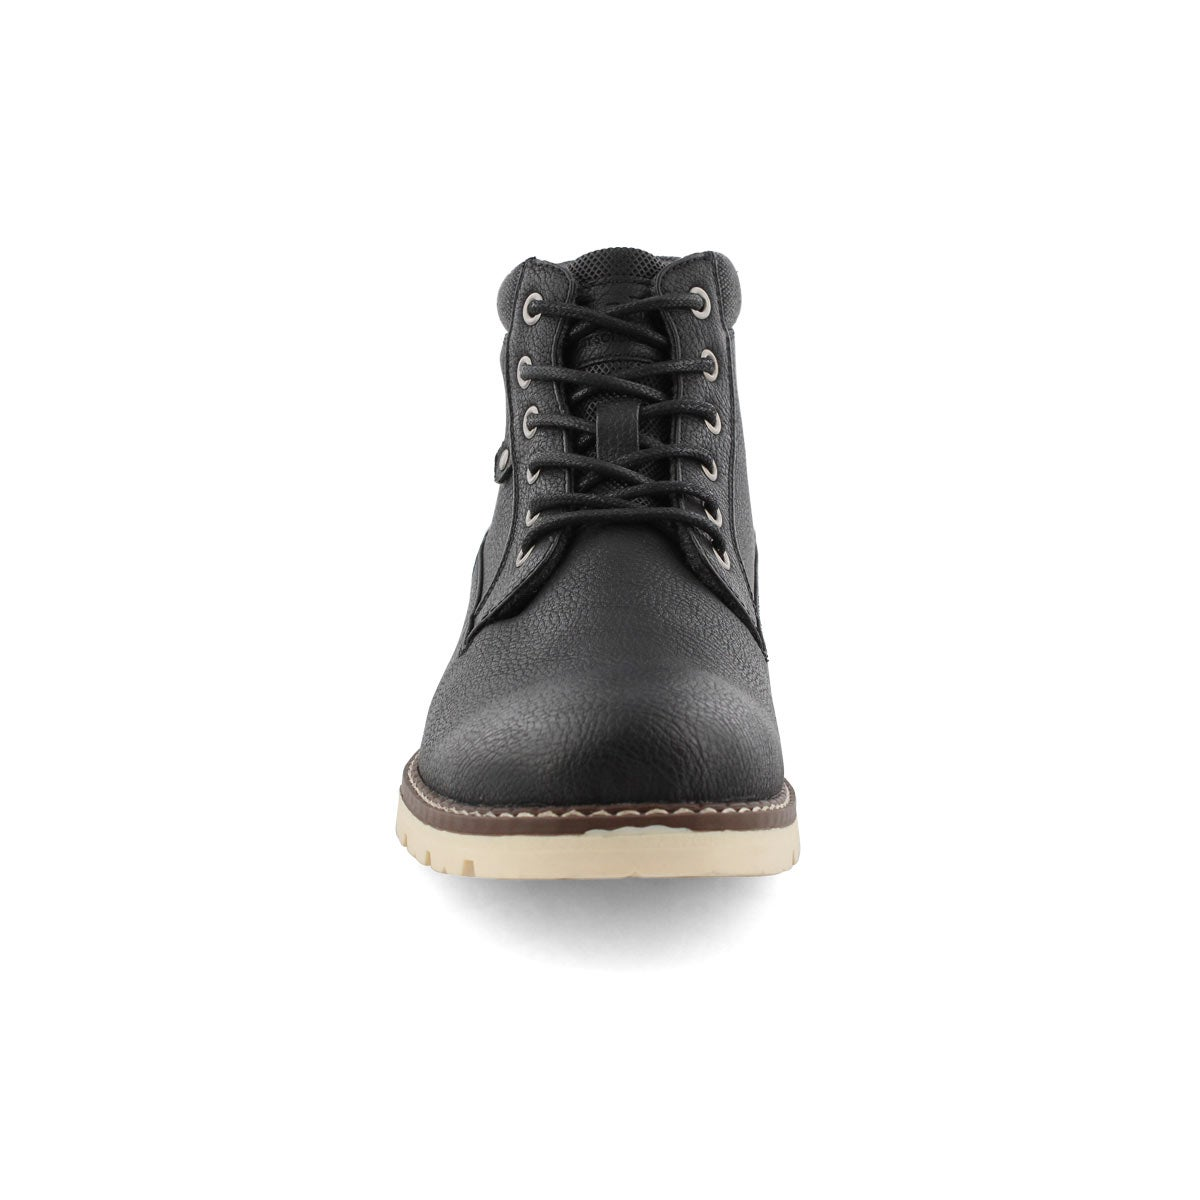 Mns Hallway 2 black lace up ankle boot